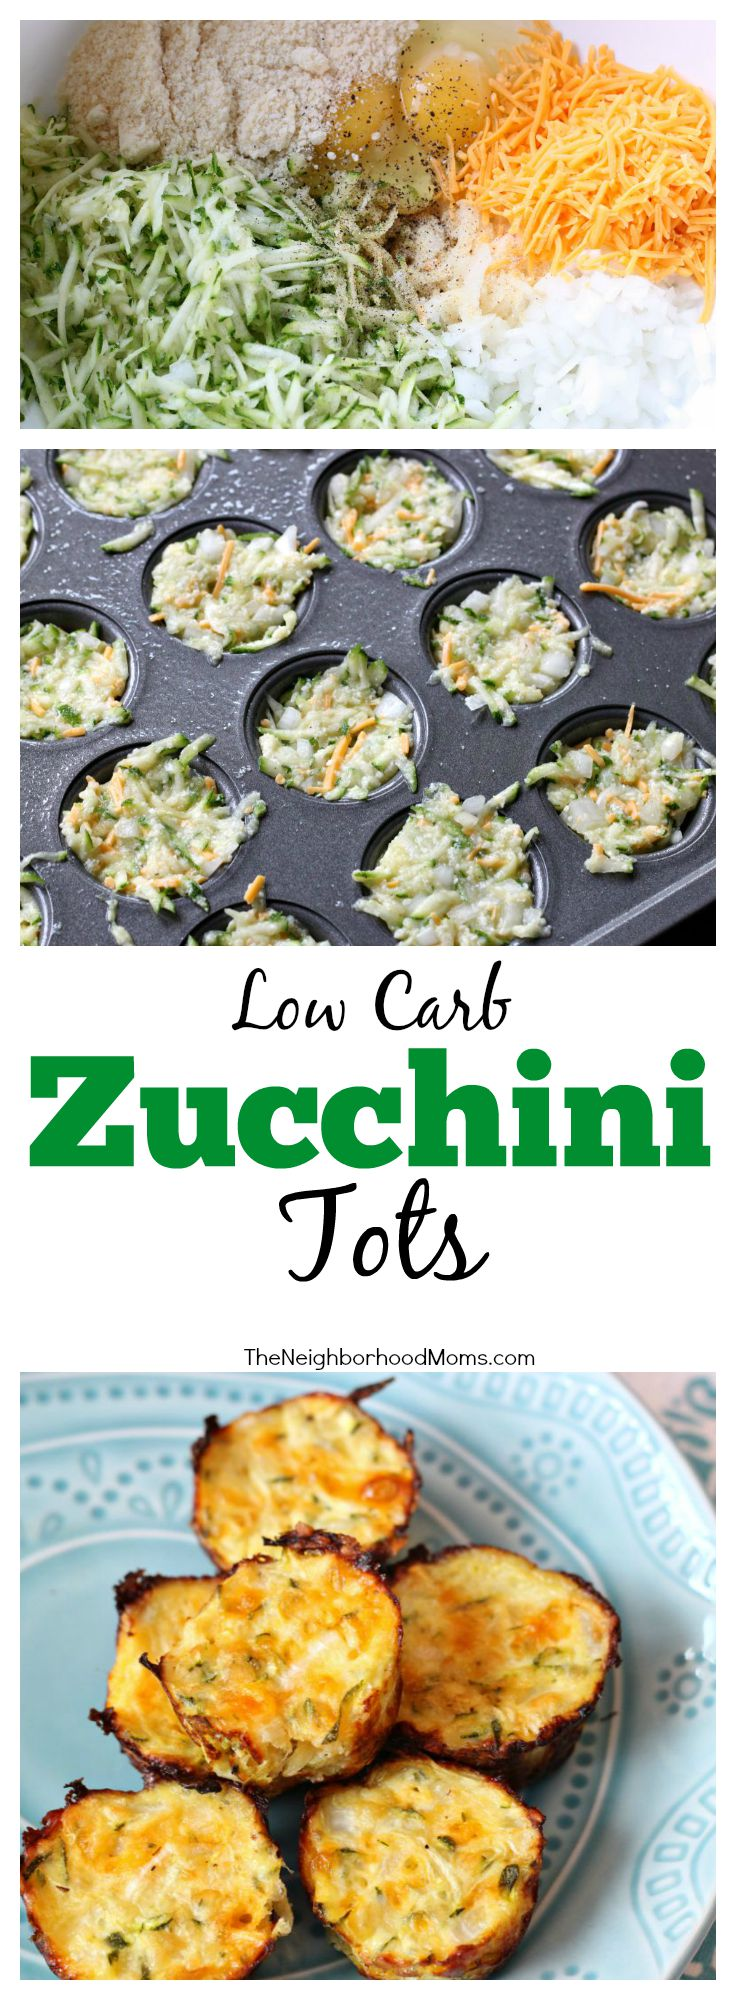 Low Carb Zucchini Tots - The Neighborhood Moms